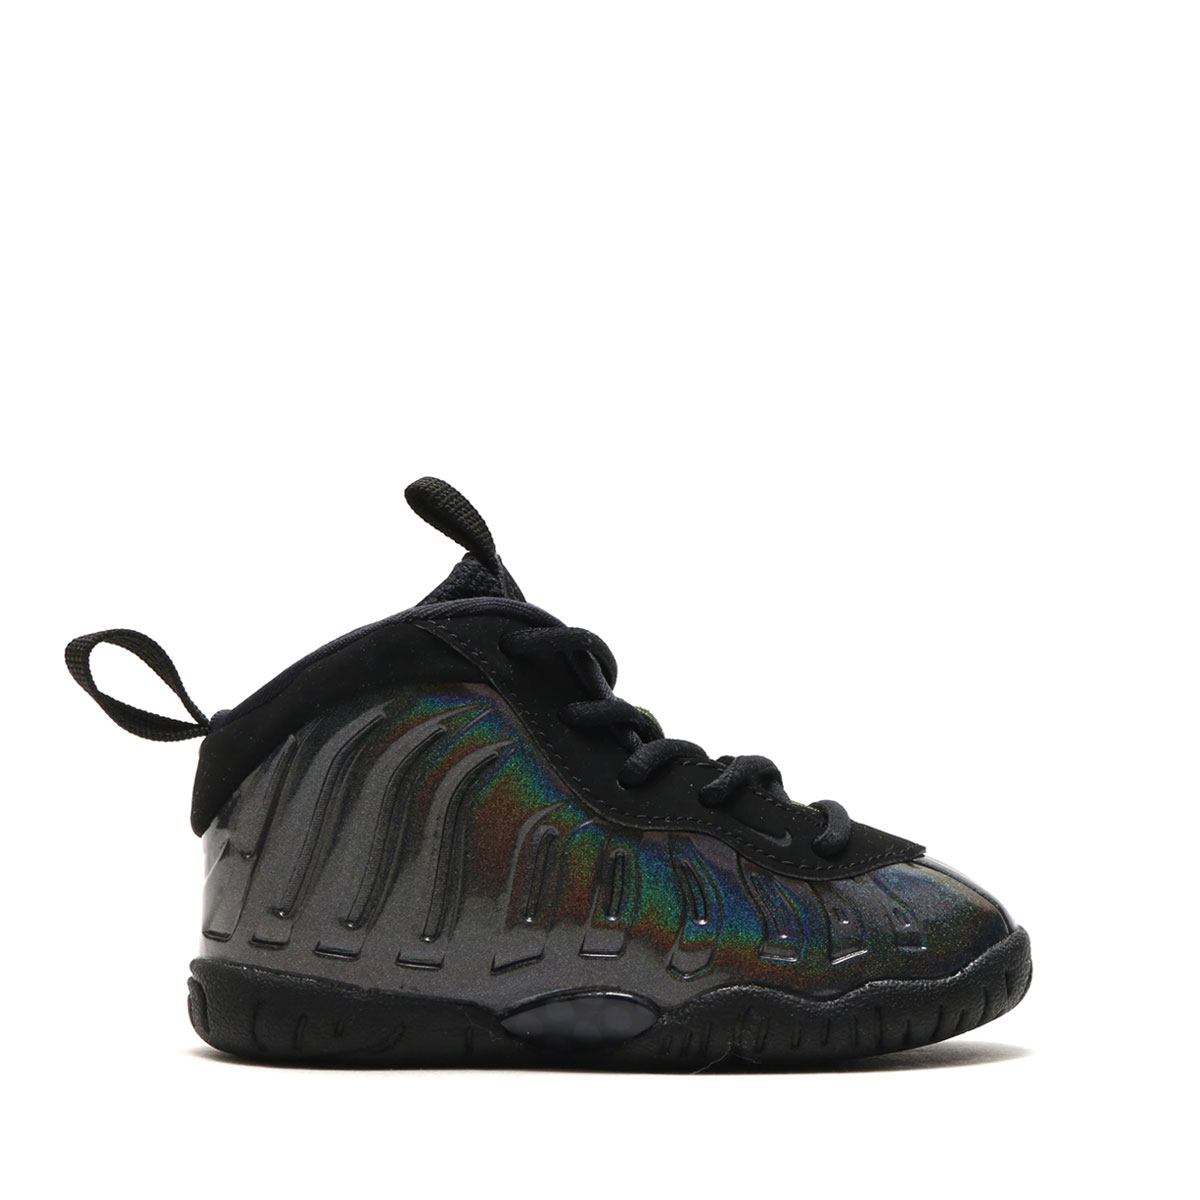 a1cd2cdea76 NIKE LITTLE POSITE ONE (TD) (LEGION GREEN BLACK-BLACK) (ナイキリトルポジット 1 TD)